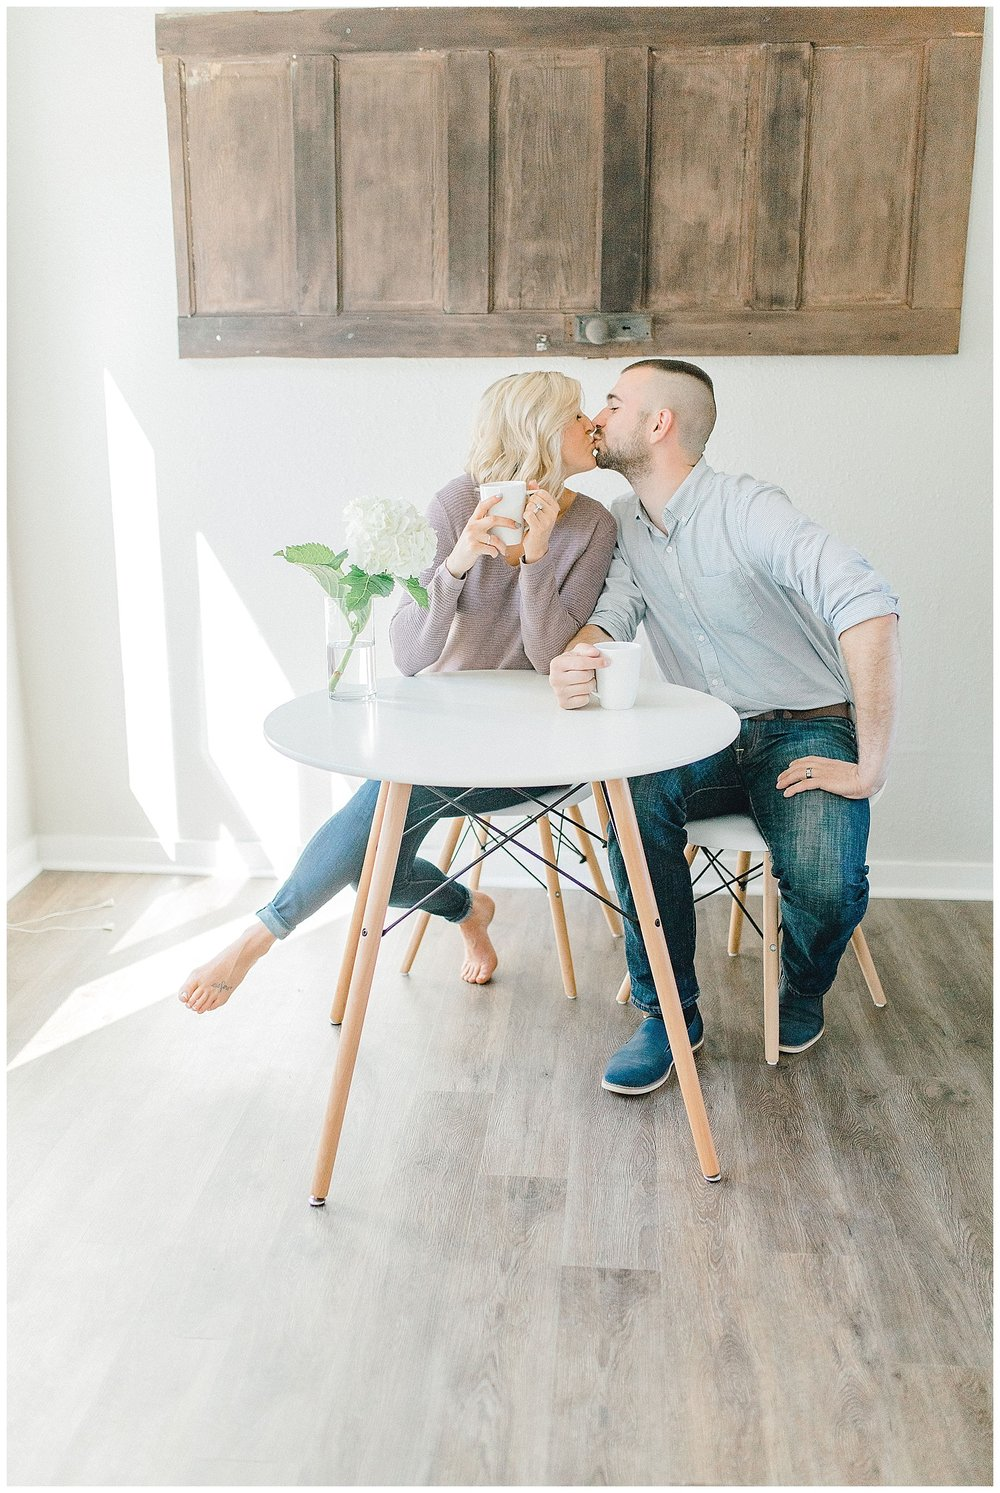 Emma Rose Company Branded Lifestyle Session | Seiler Home Group Real Estate Agents | Light and Airy Seattle and Portland Wedding Photographer | Real Estate Photo Shoot_0030.jpg